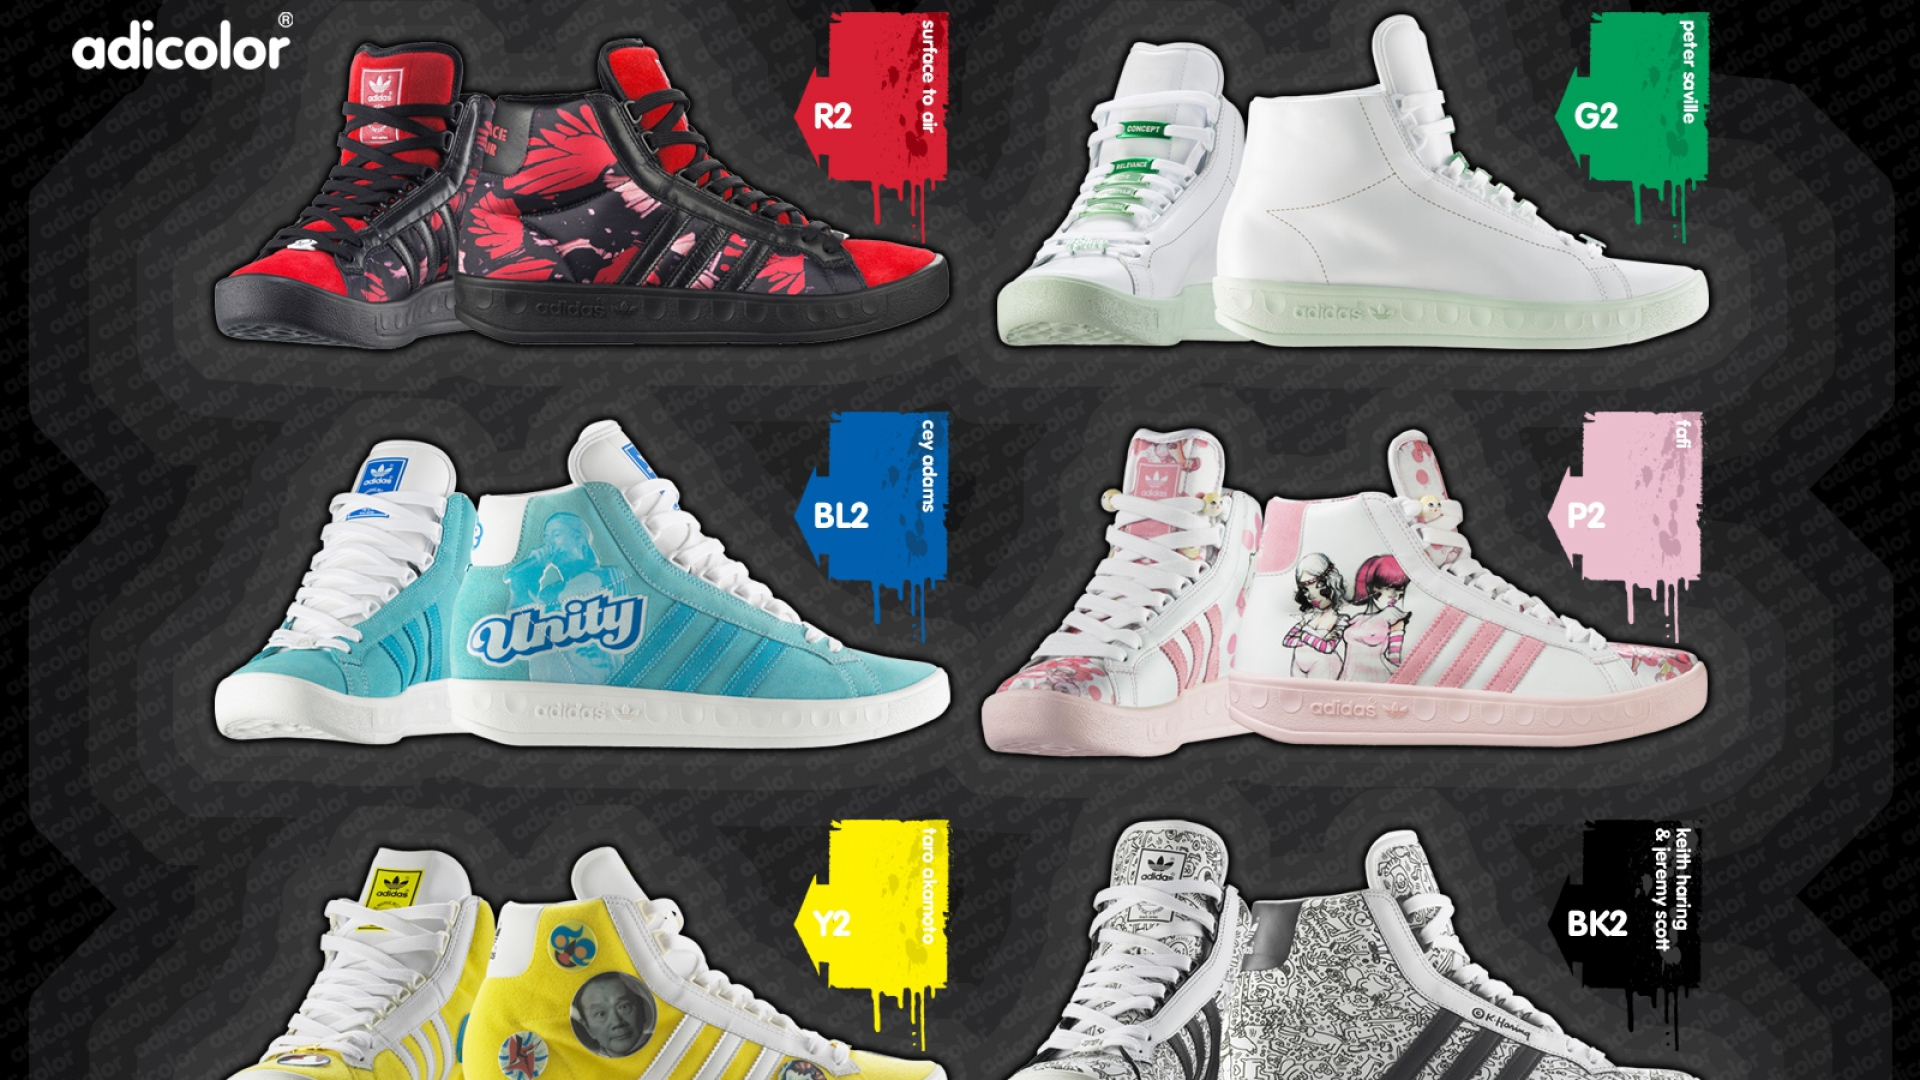 75e2ad66c116 free download adidas shoes wallpapers hd · Download Adidas Shoes Free PNG  photo images and clipart